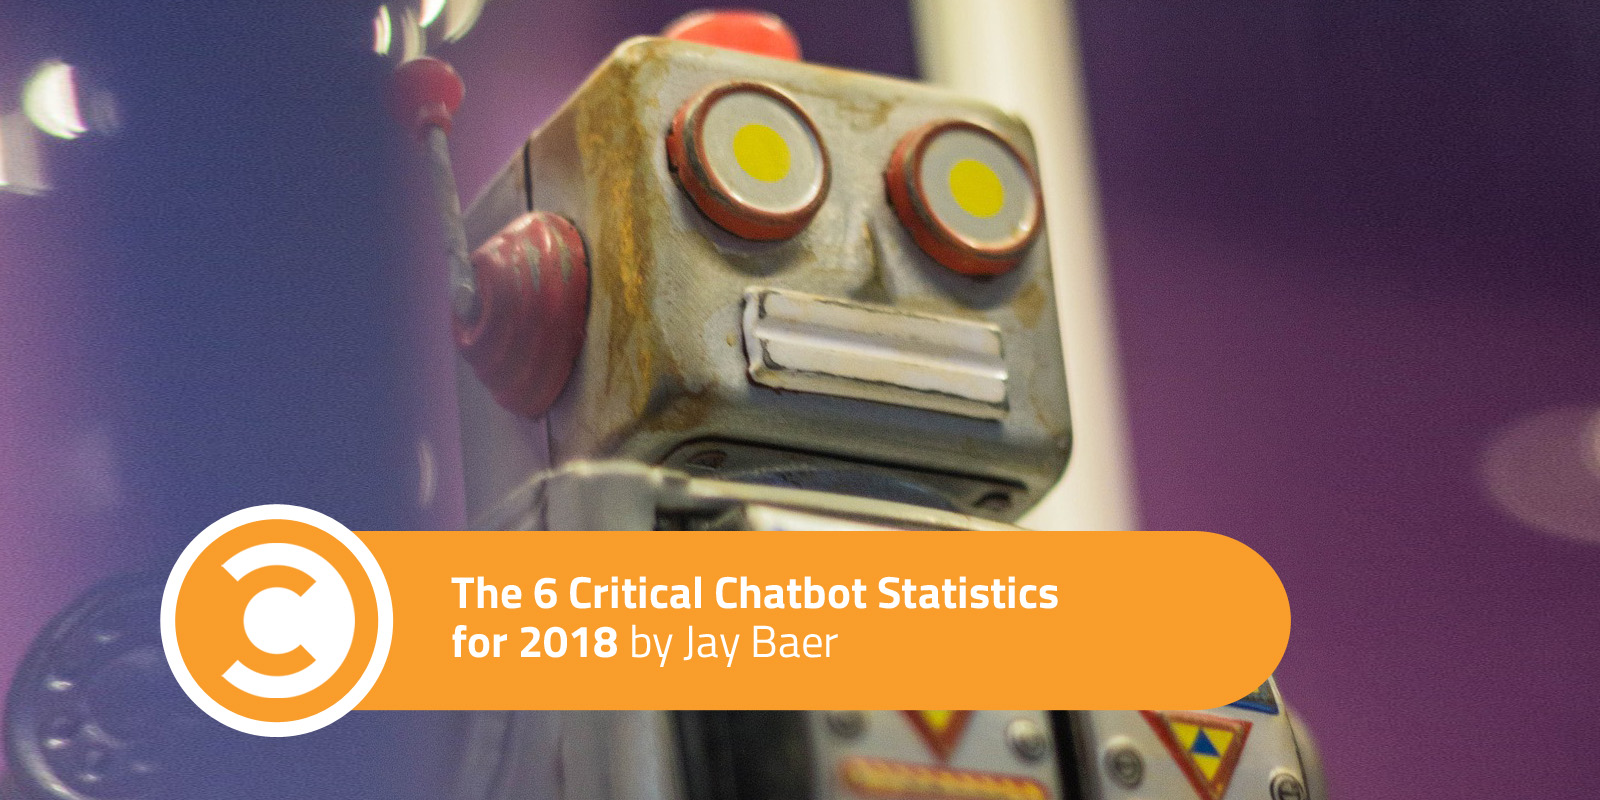 The 6 Critical Chatbot Statistics for 2018